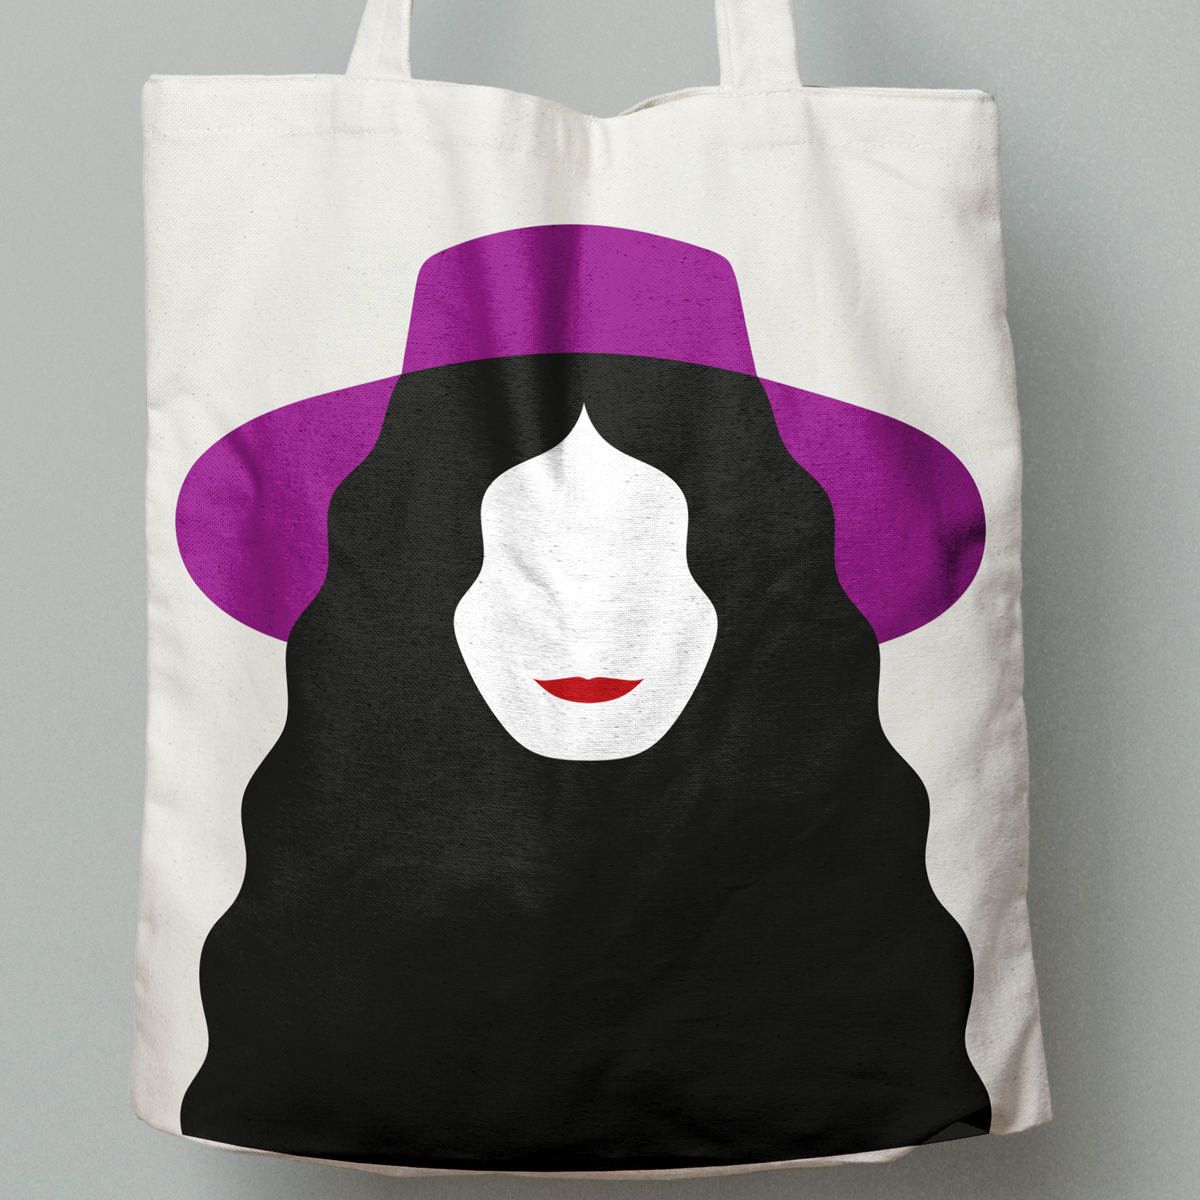 Image of suONO Tote bag Limited edition ((Artwork by Olimpia Zagnoli)